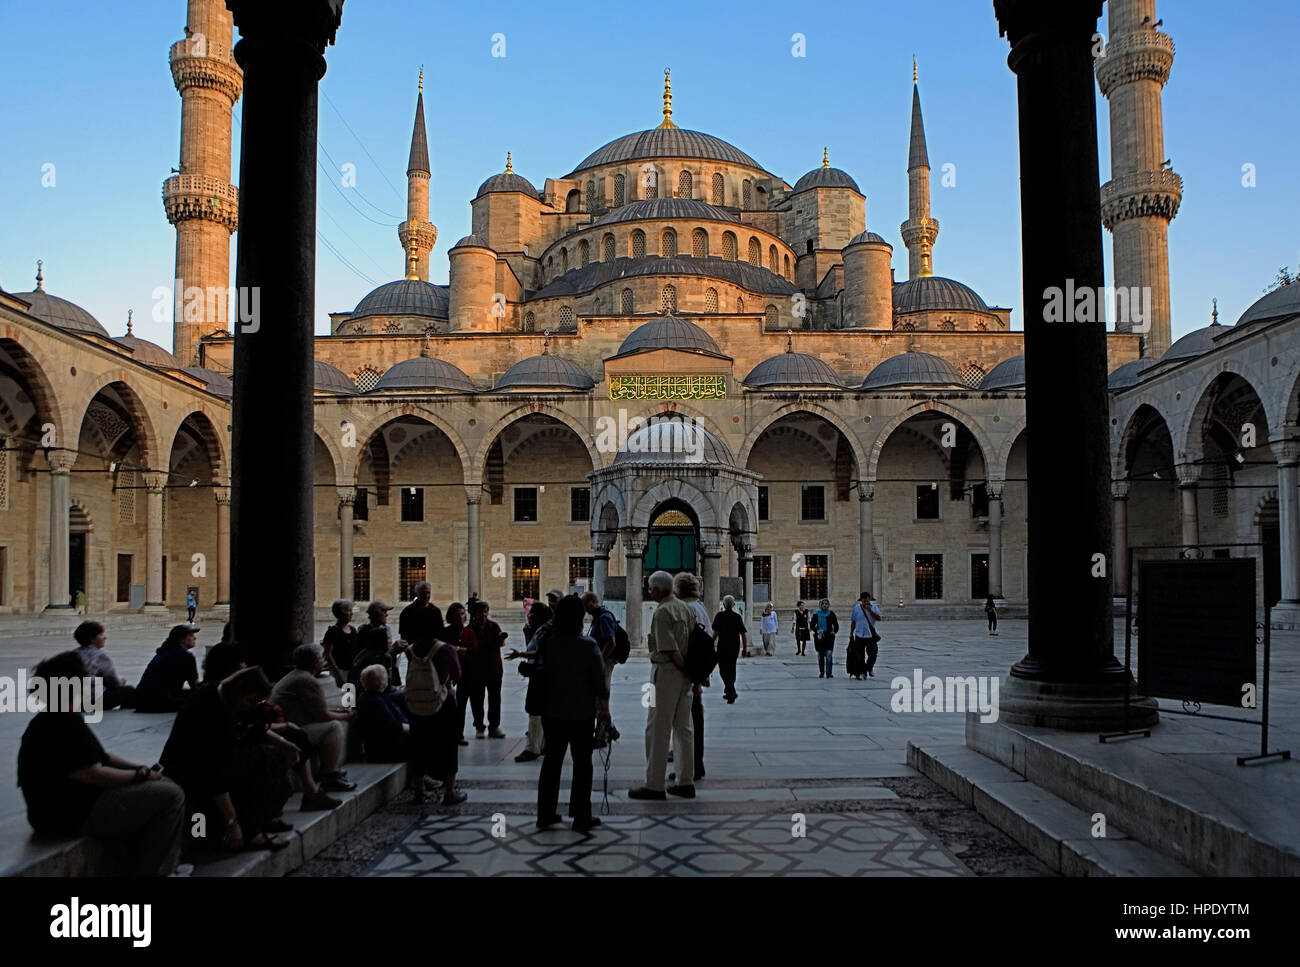 Courtyard of Mosque Sultan Ahmet, Blue Mosque. Istanbul. Turkey - Stock Image